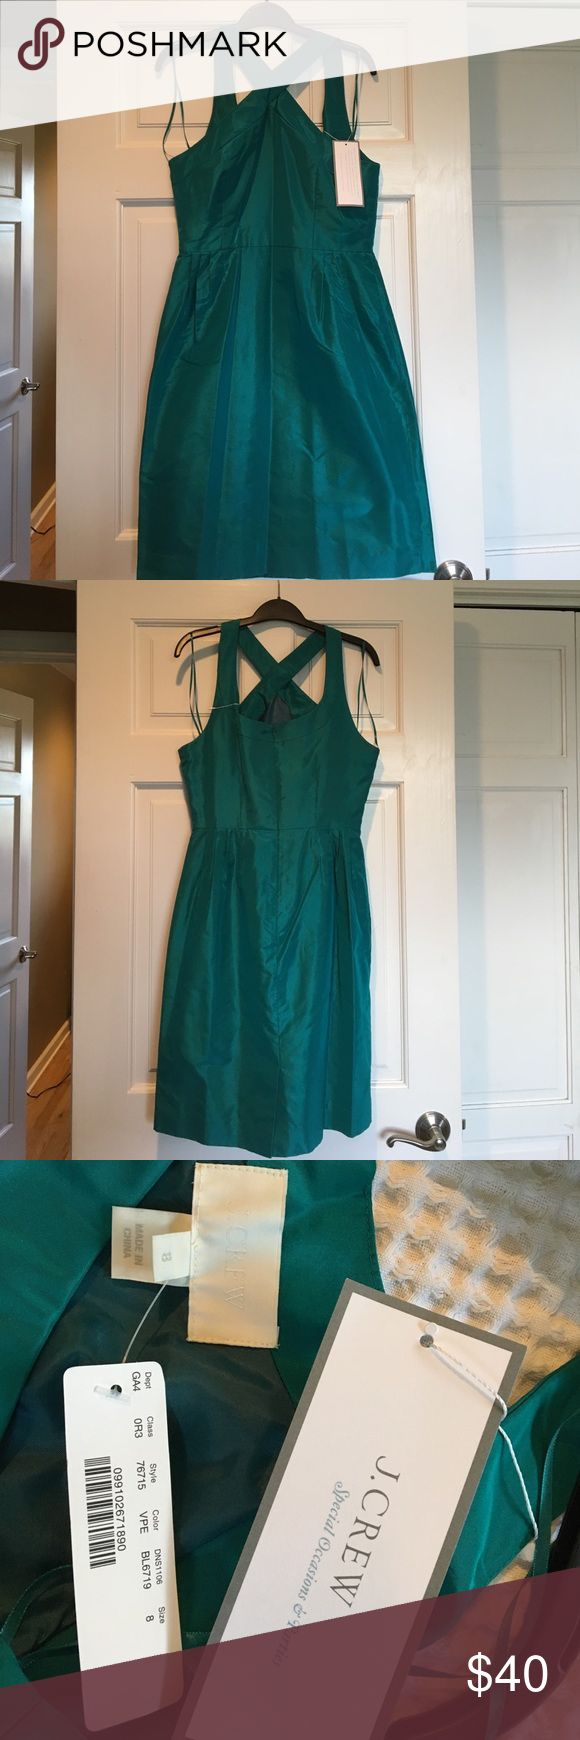 J.Crew Shift Silk Taffeta Dress J.Crew Wonder Shift Silk Taffeta Dress. Special occasion and party collection. New with Tags. Size 8. Color is vintage peacock. Purchased for a bridesmaids dress but did not end up wearing. Would be perfect as a guest of wedding dress J. Crew Dresses